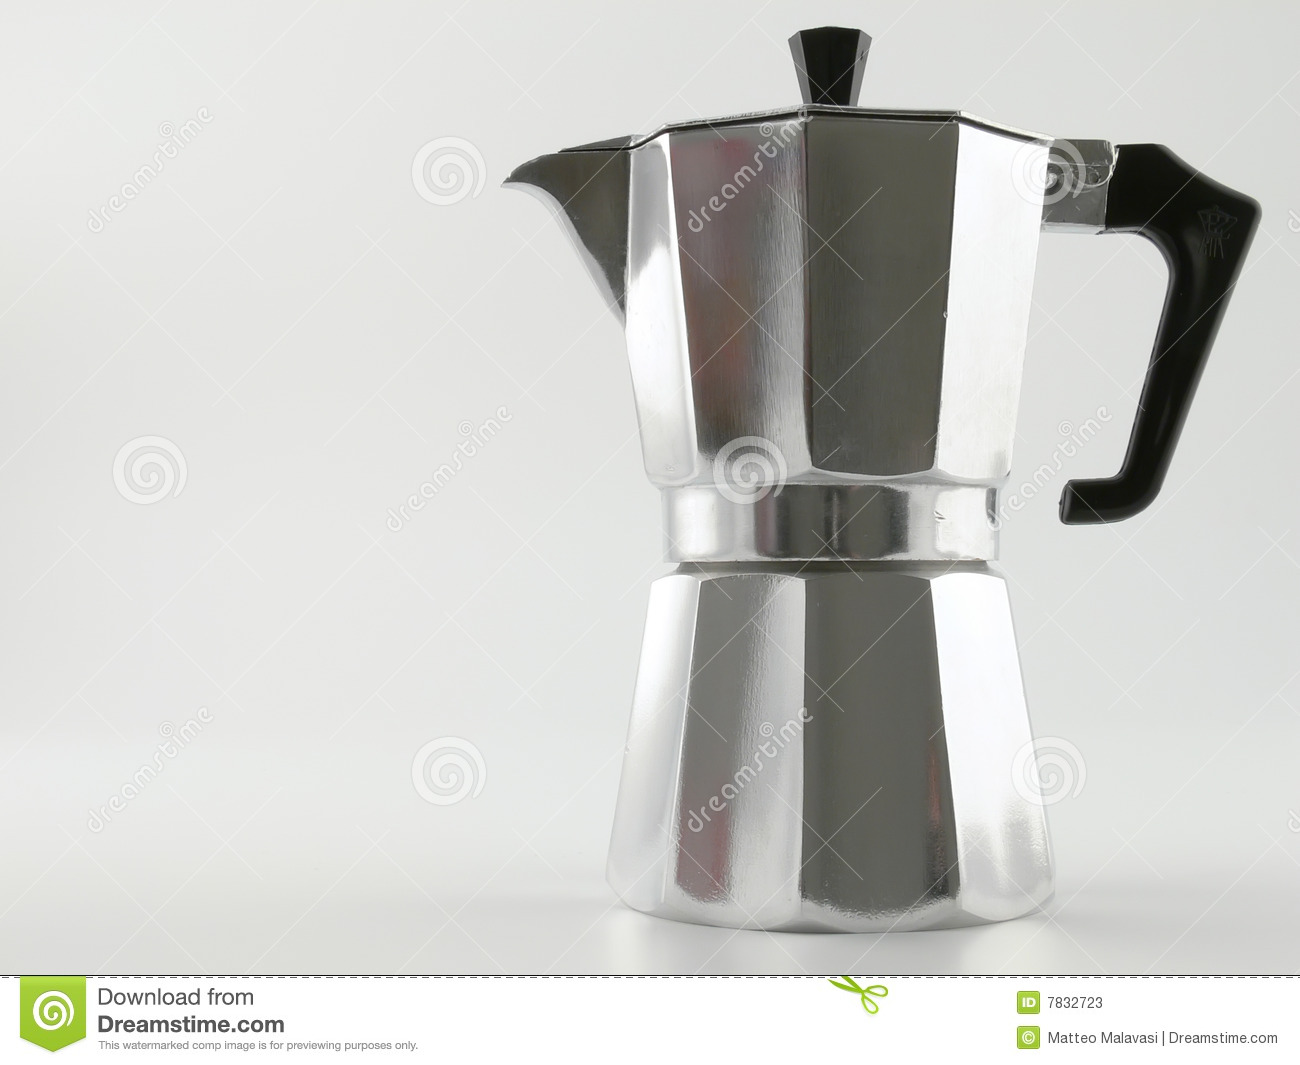 Close up picture of a typical italian coffee-maker.